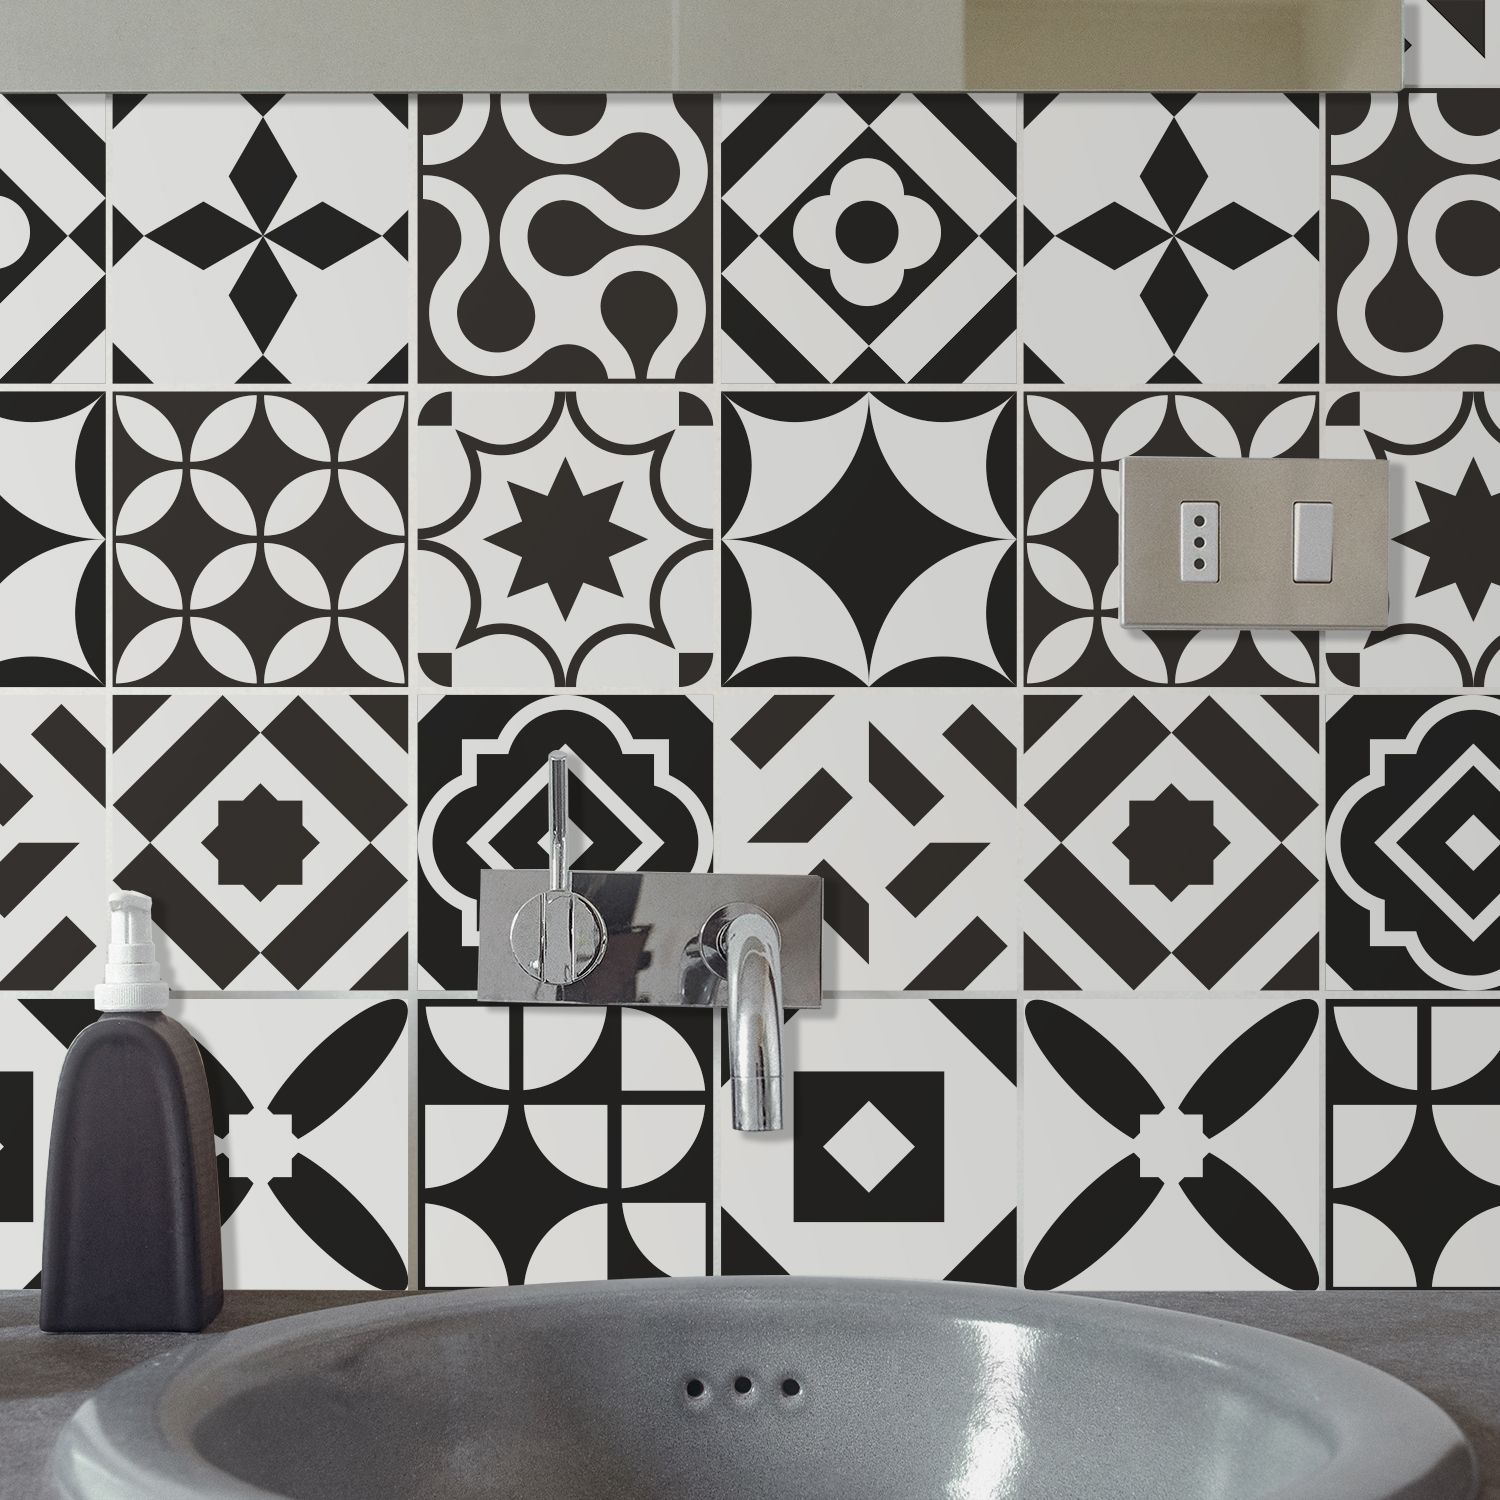 Ross Black and White Wall Tile Sticker Set - 15 x 15 cm (6 x 6 in) - 24 pcs, DIY Art, Home Decorations, Decals, Kitchen Decor, Bathroom Ideas